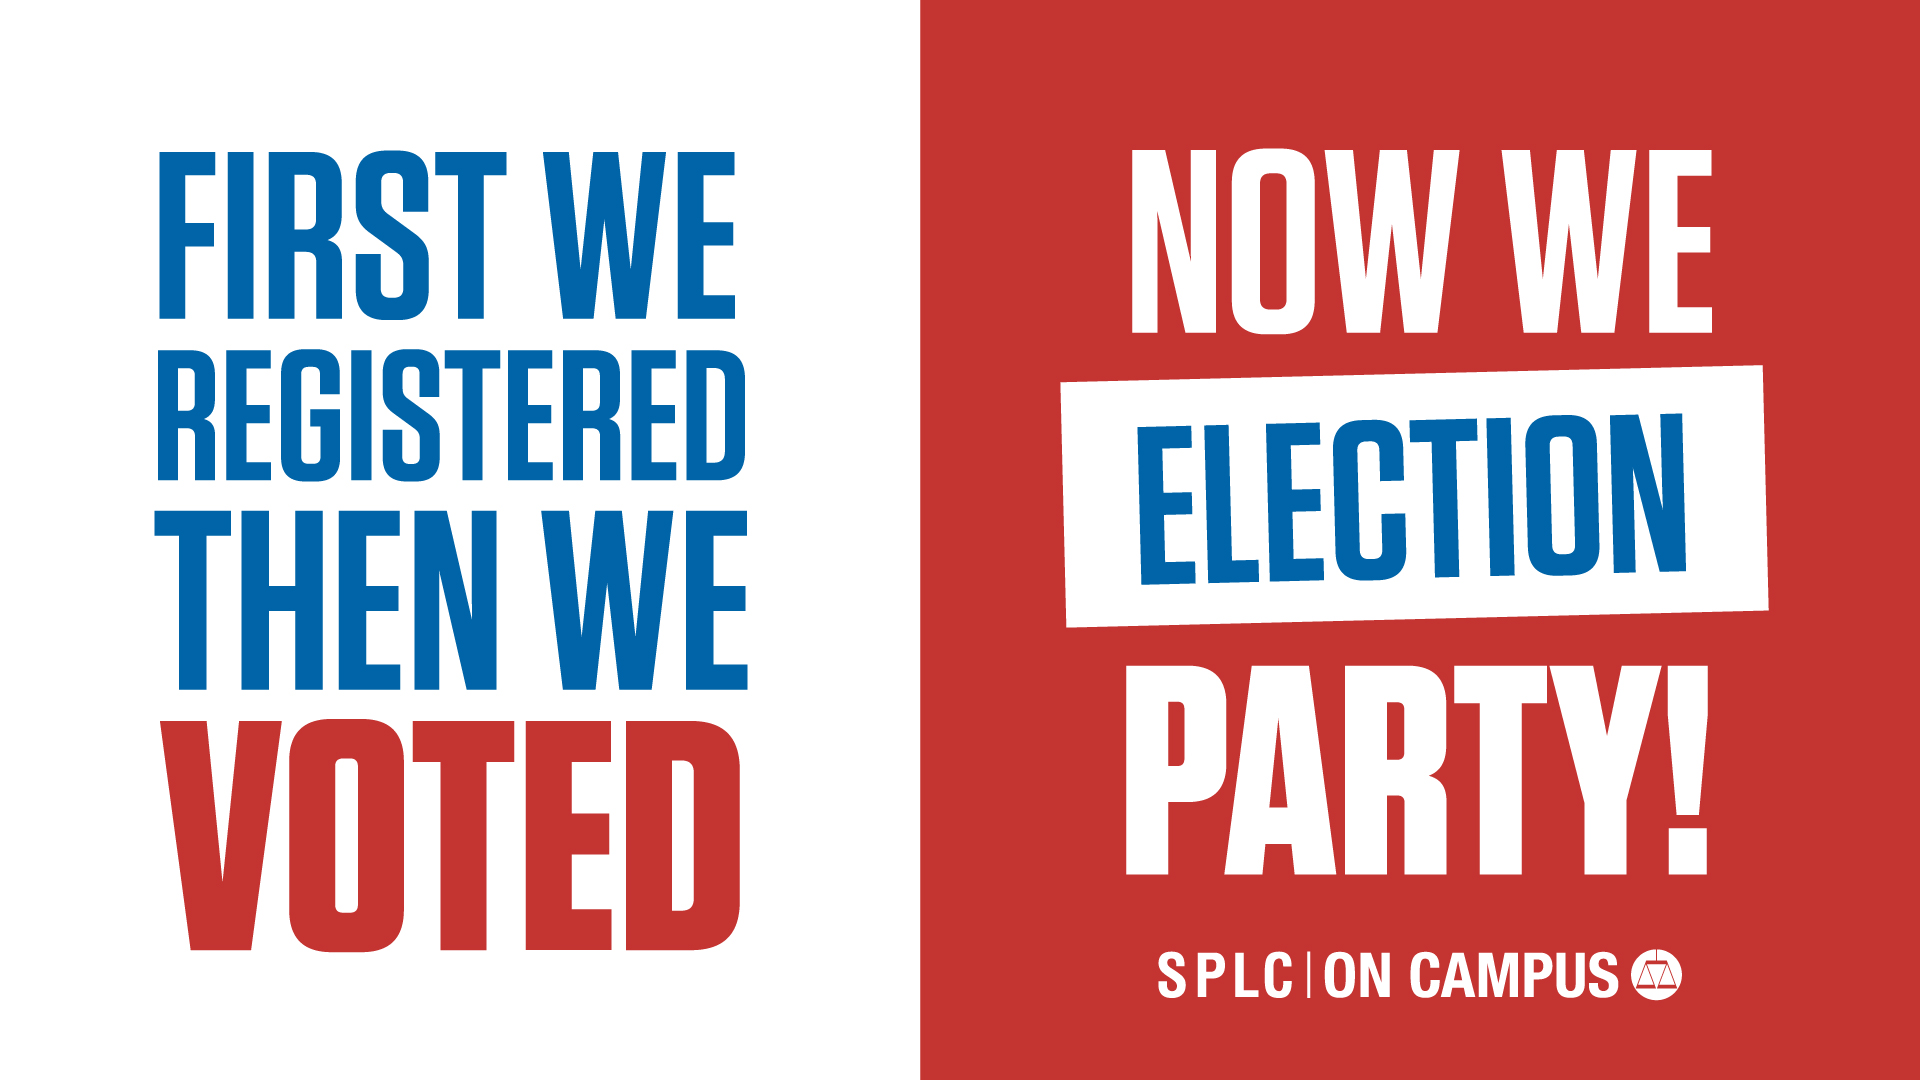 SOC_Vote Box_Election Watch Party FB Cover.jpg